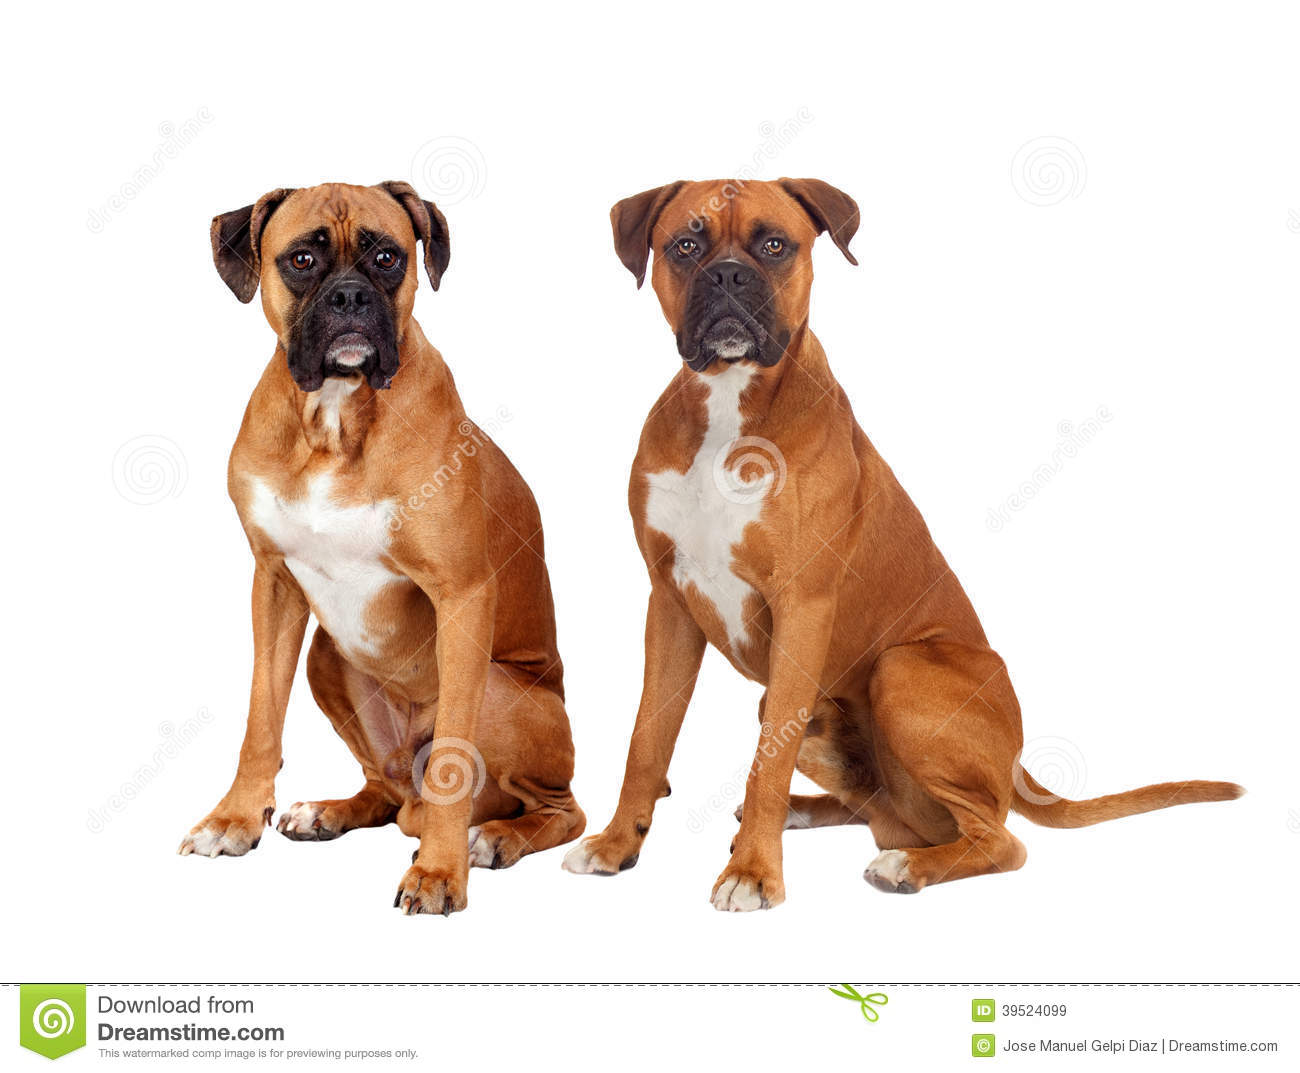 Dog Names For Two Dogs